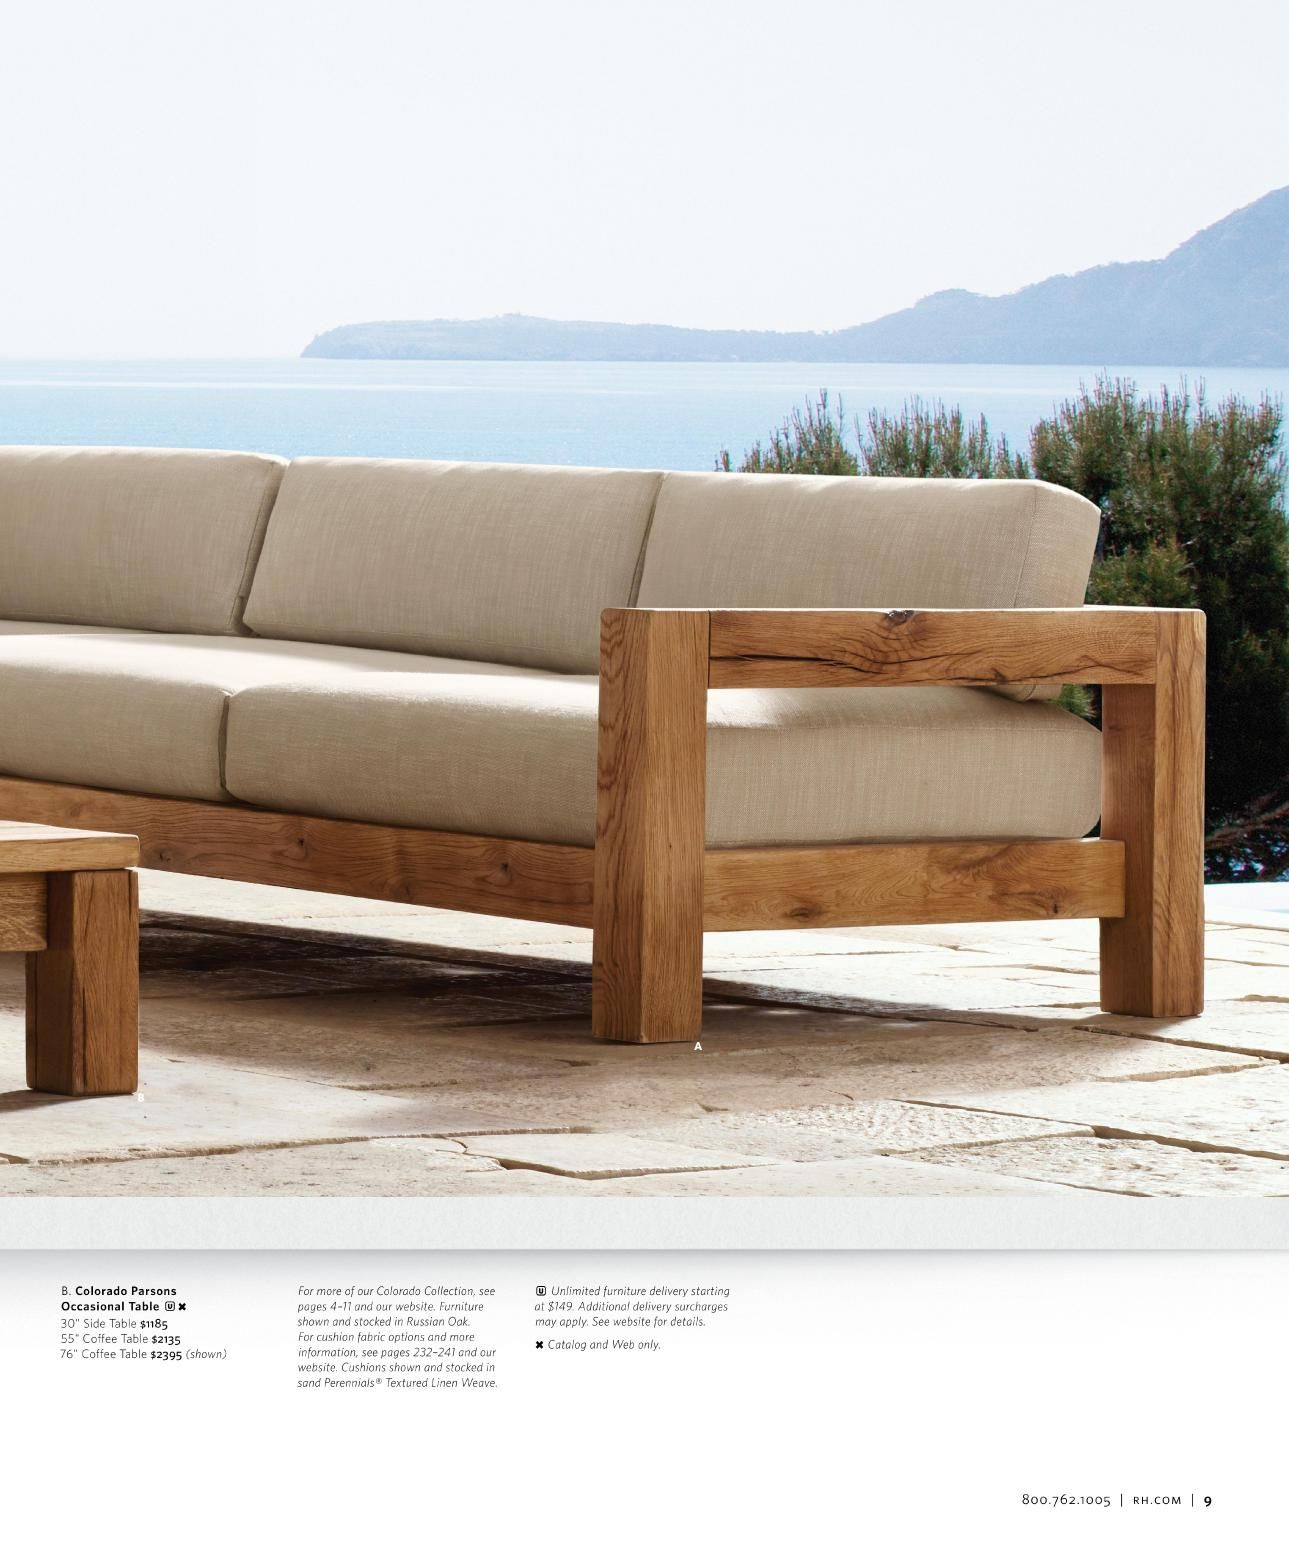 Sillones Jardin Outlet Restoration Hardware Source Book Outdoor Ideas To